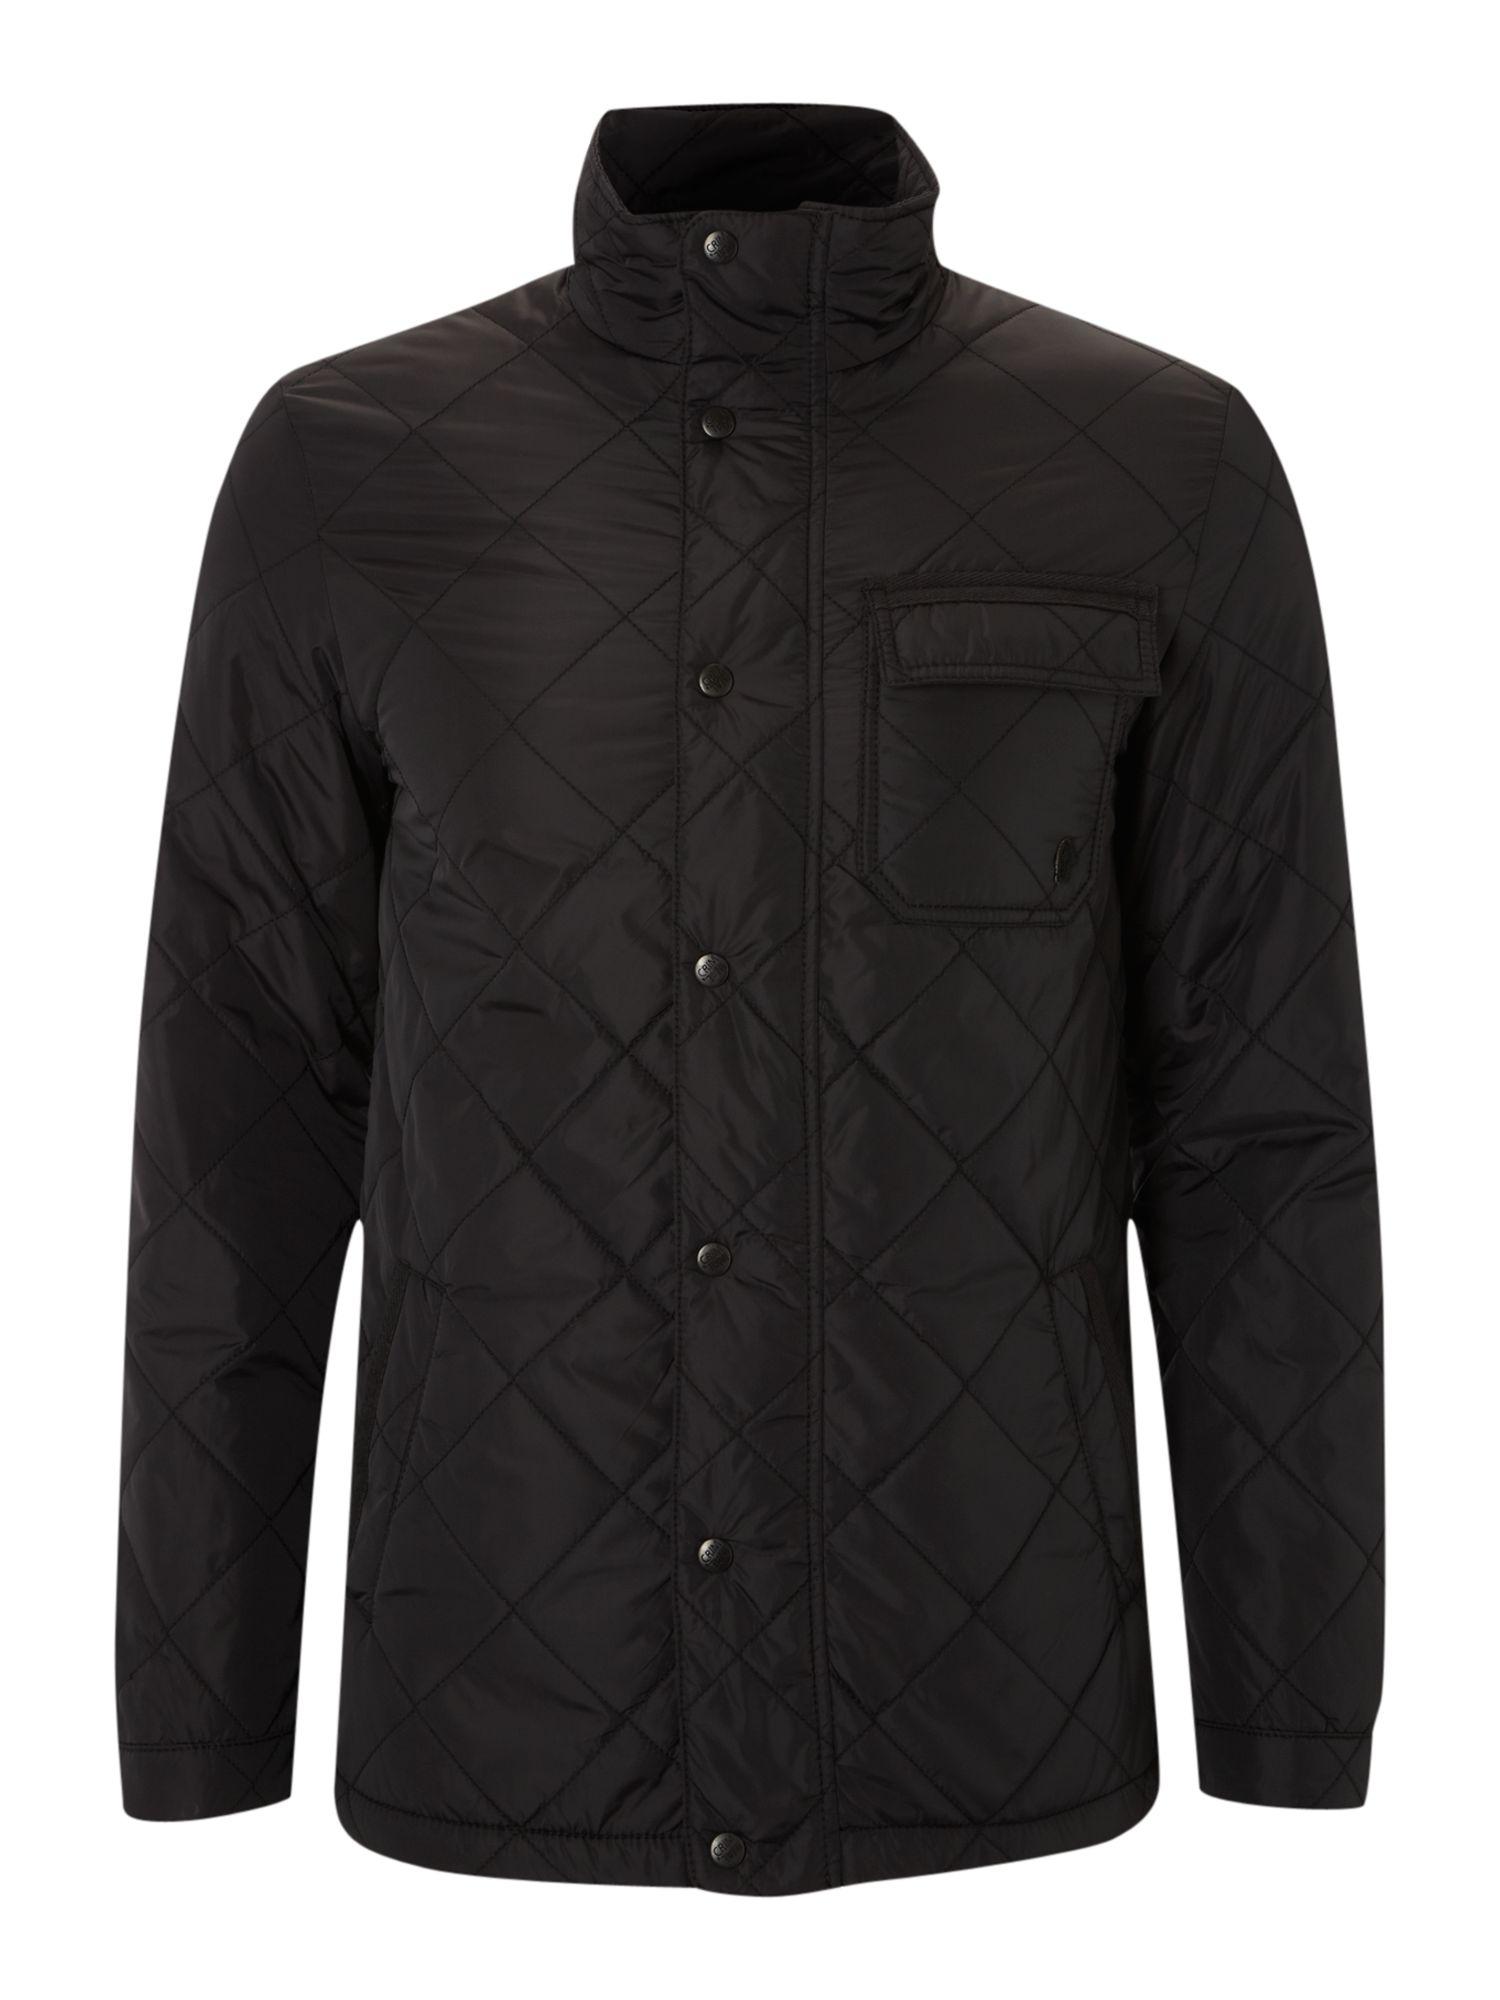 Kyoto quilted jacket